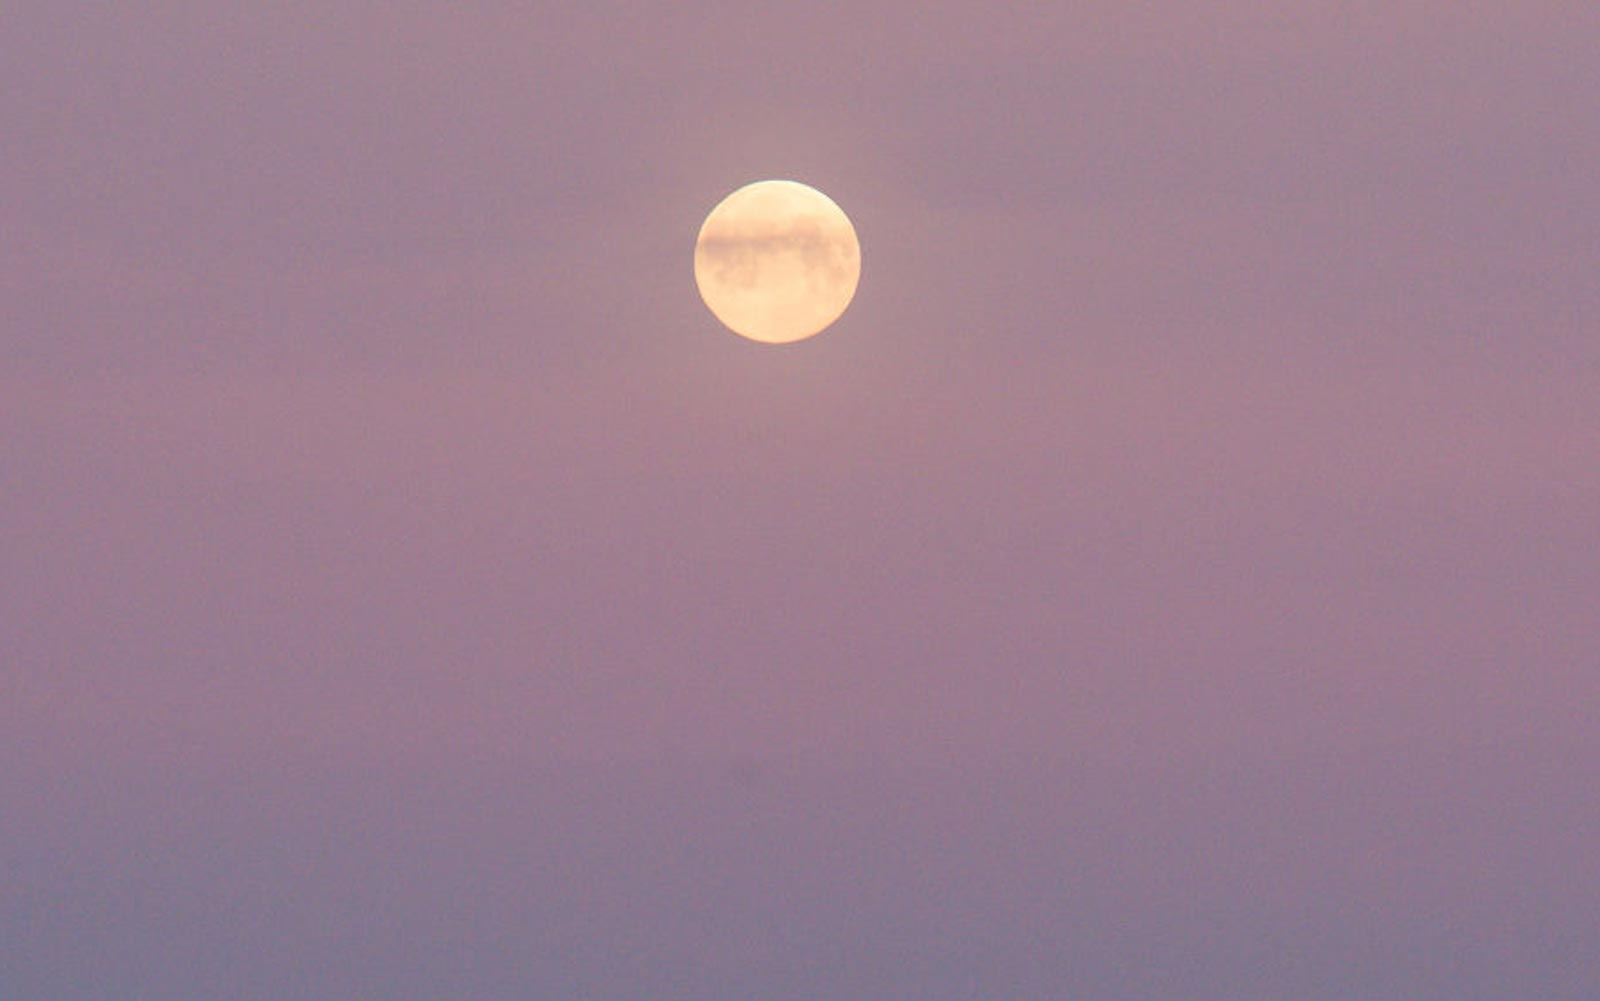 Full 'Pink Moon' will rise in the night sky this Easter